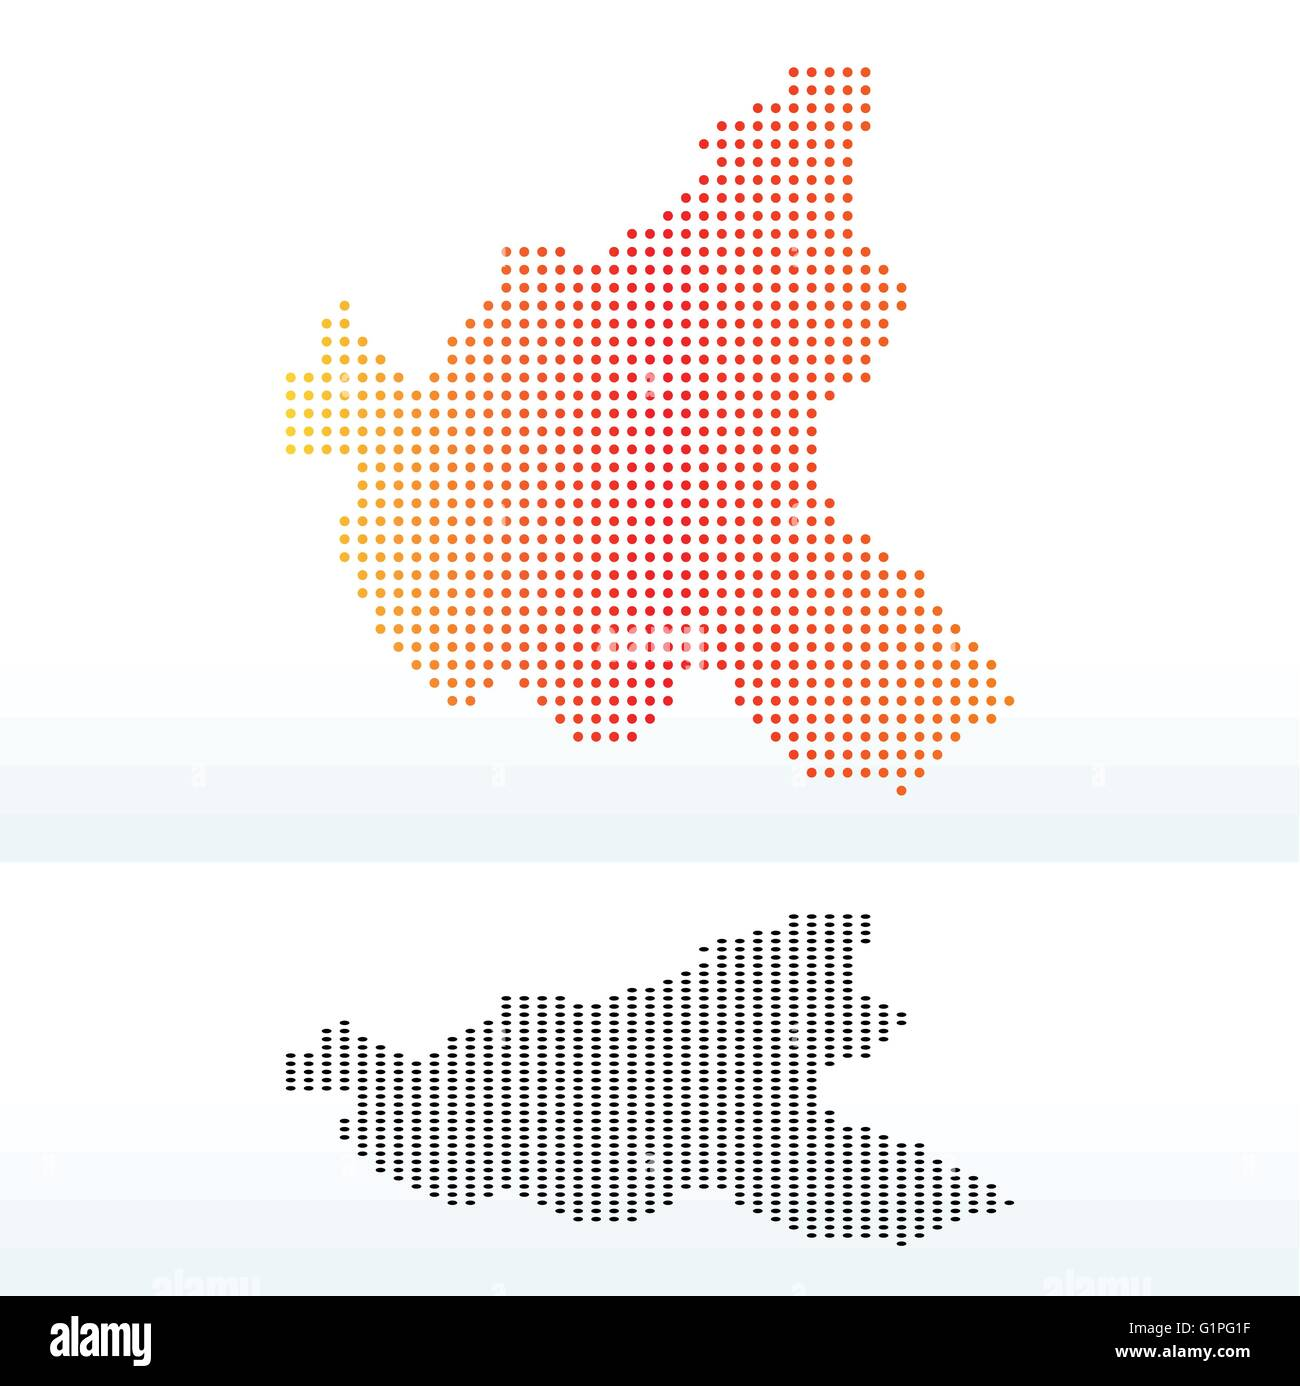 Map of Hamburg, Germany with Dot Pattern - Stock Vector